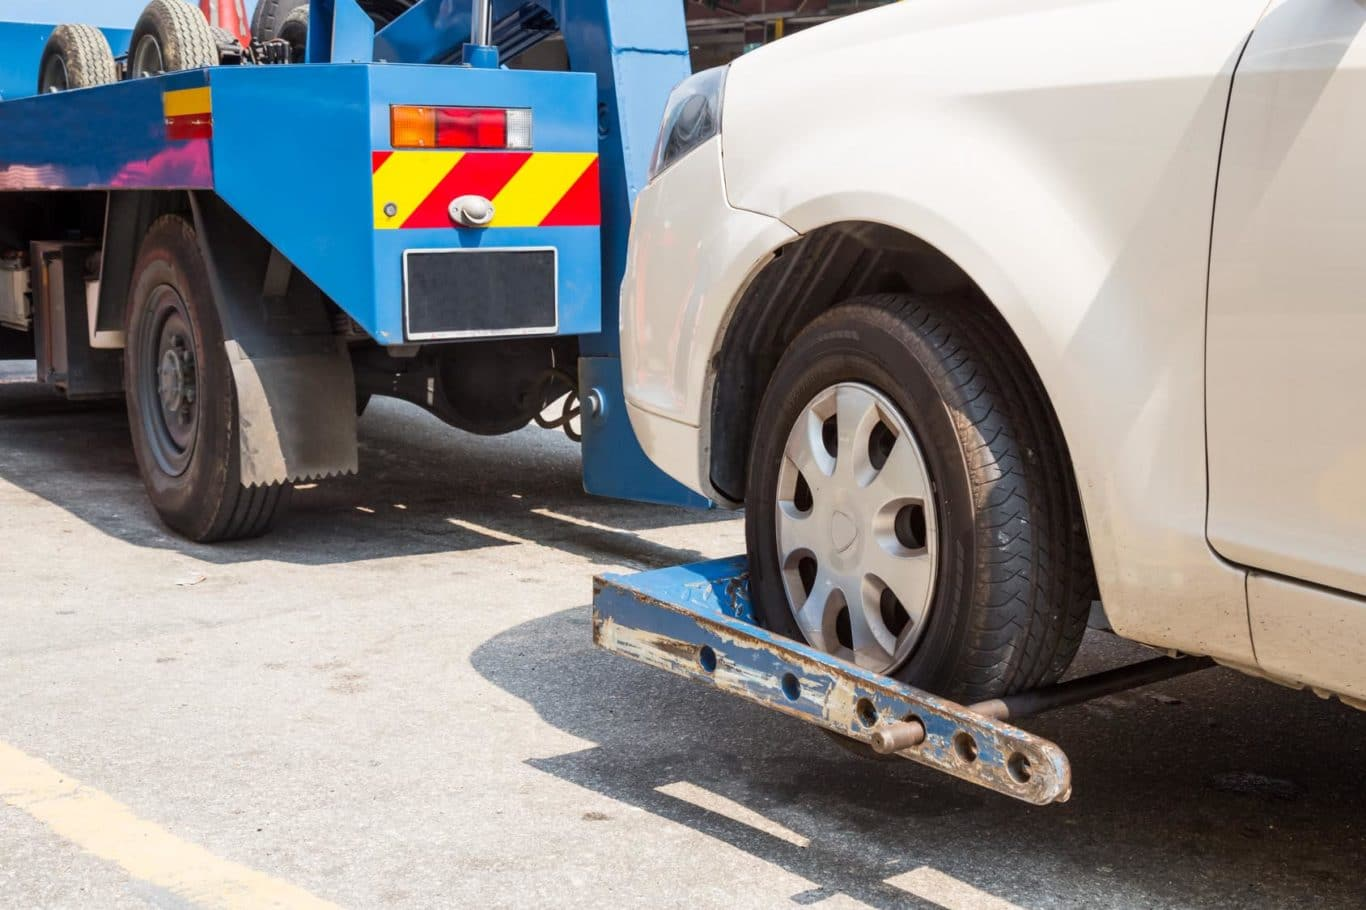 Dublin 7 (D7) expert Towing And Recovery Dublin services